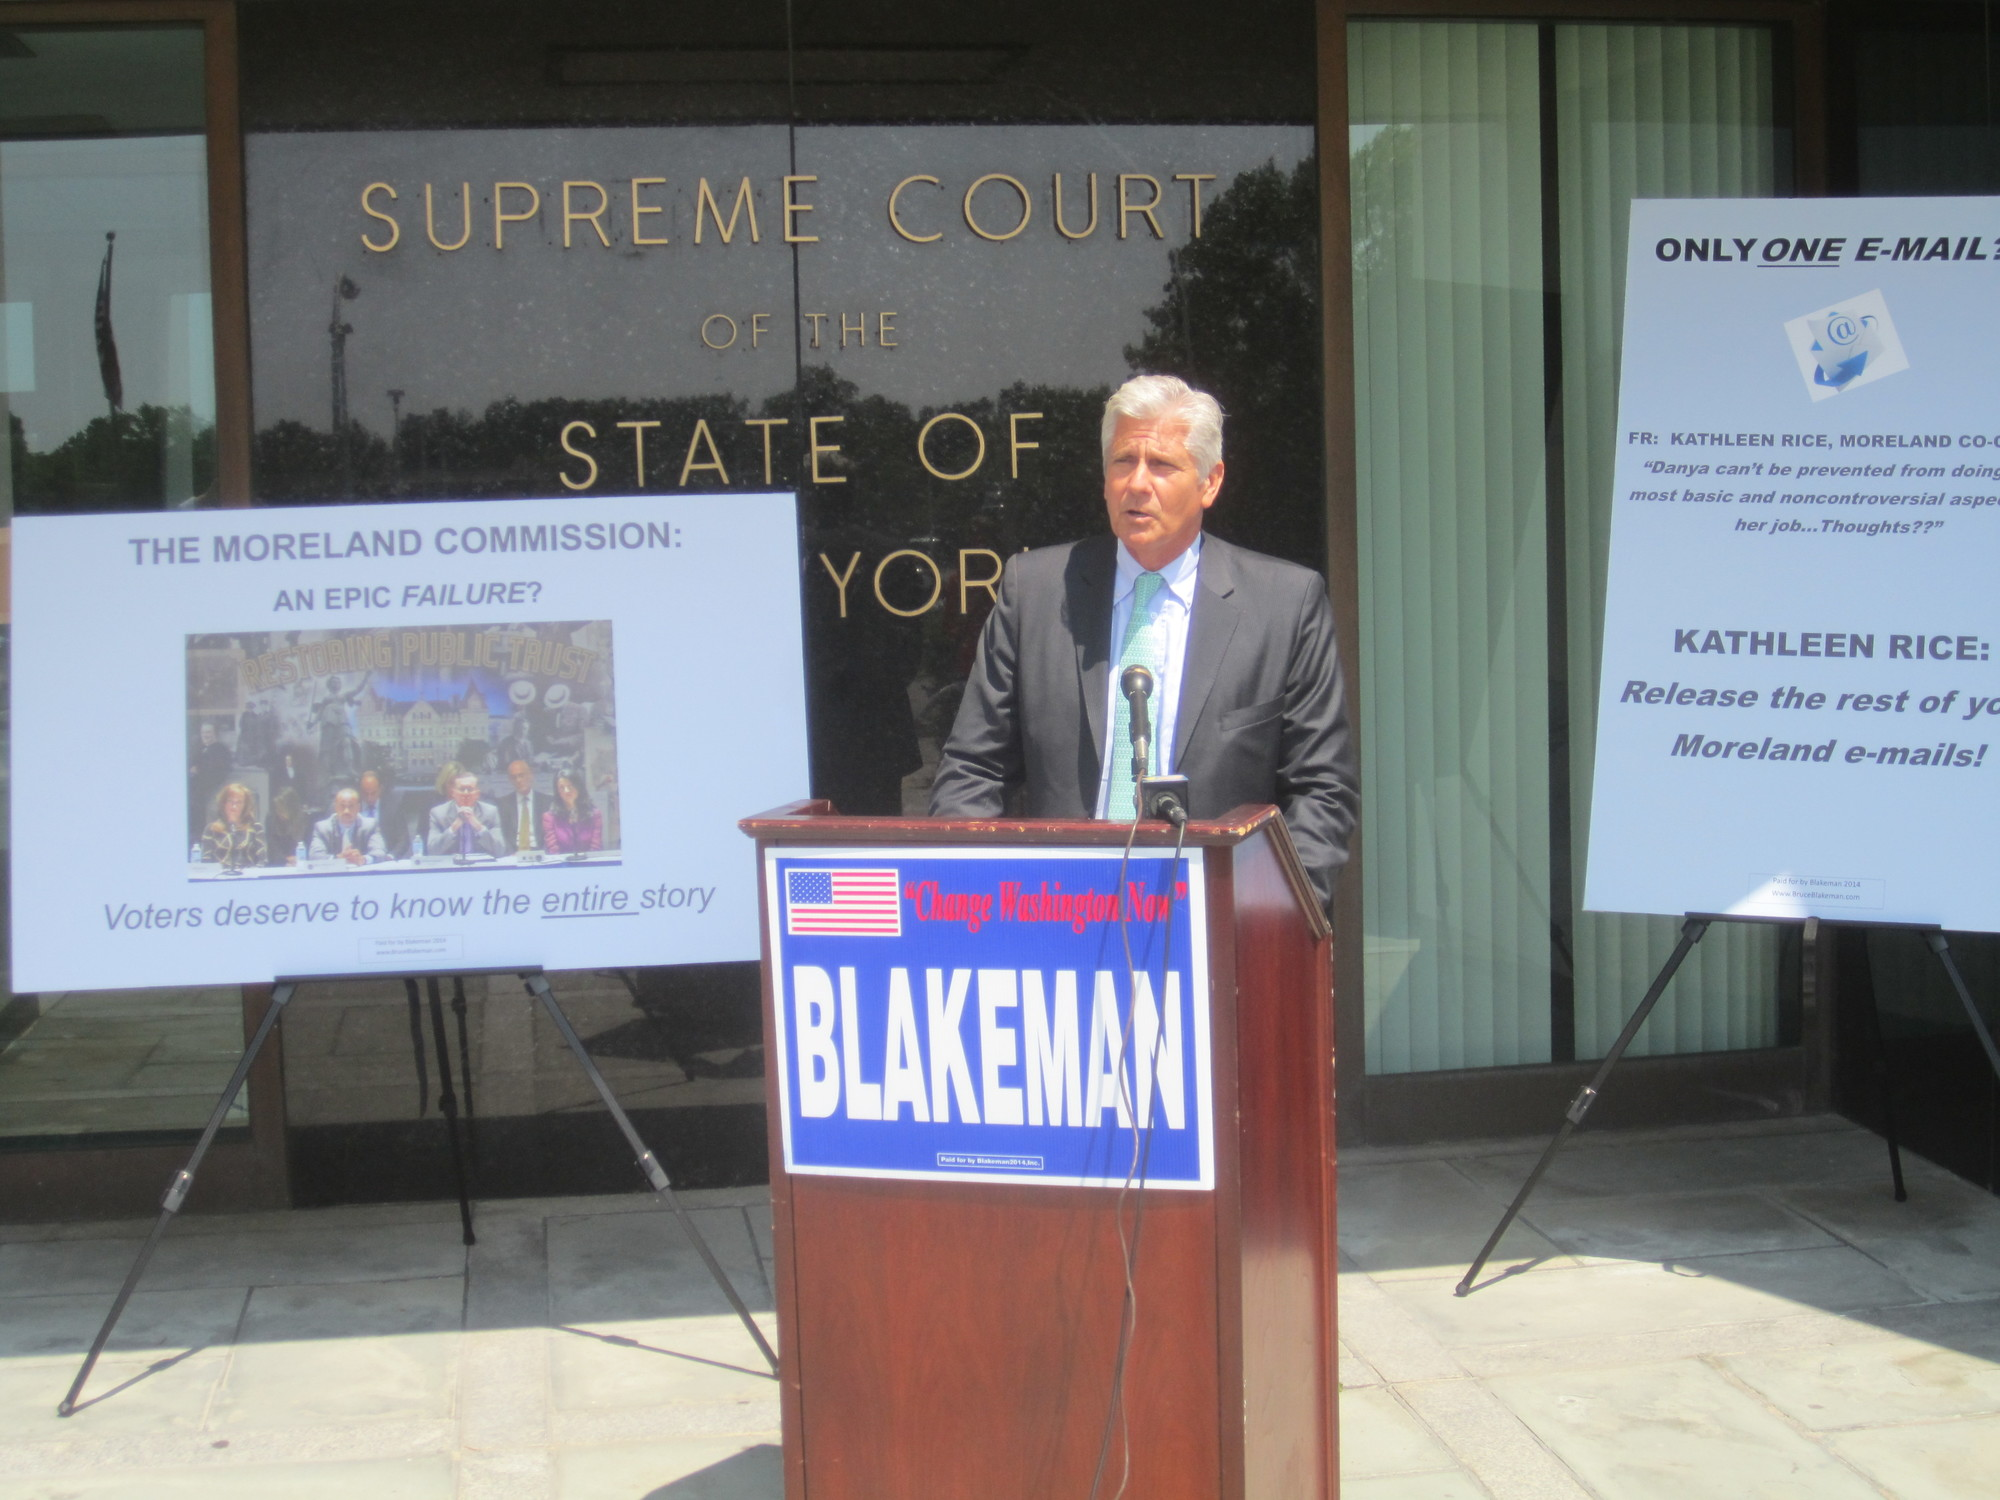 Bruce Blakeman, a former presiding officer of the Nassau County Legislature and a Republican candidate for Congress, held a press conference on July 31 in Mineola, where he called for his Democratic opponent, District Attorney Kathleen Rice, to explain her role at the Moreland Commission, a state anti-corruption panel she co-chaired.